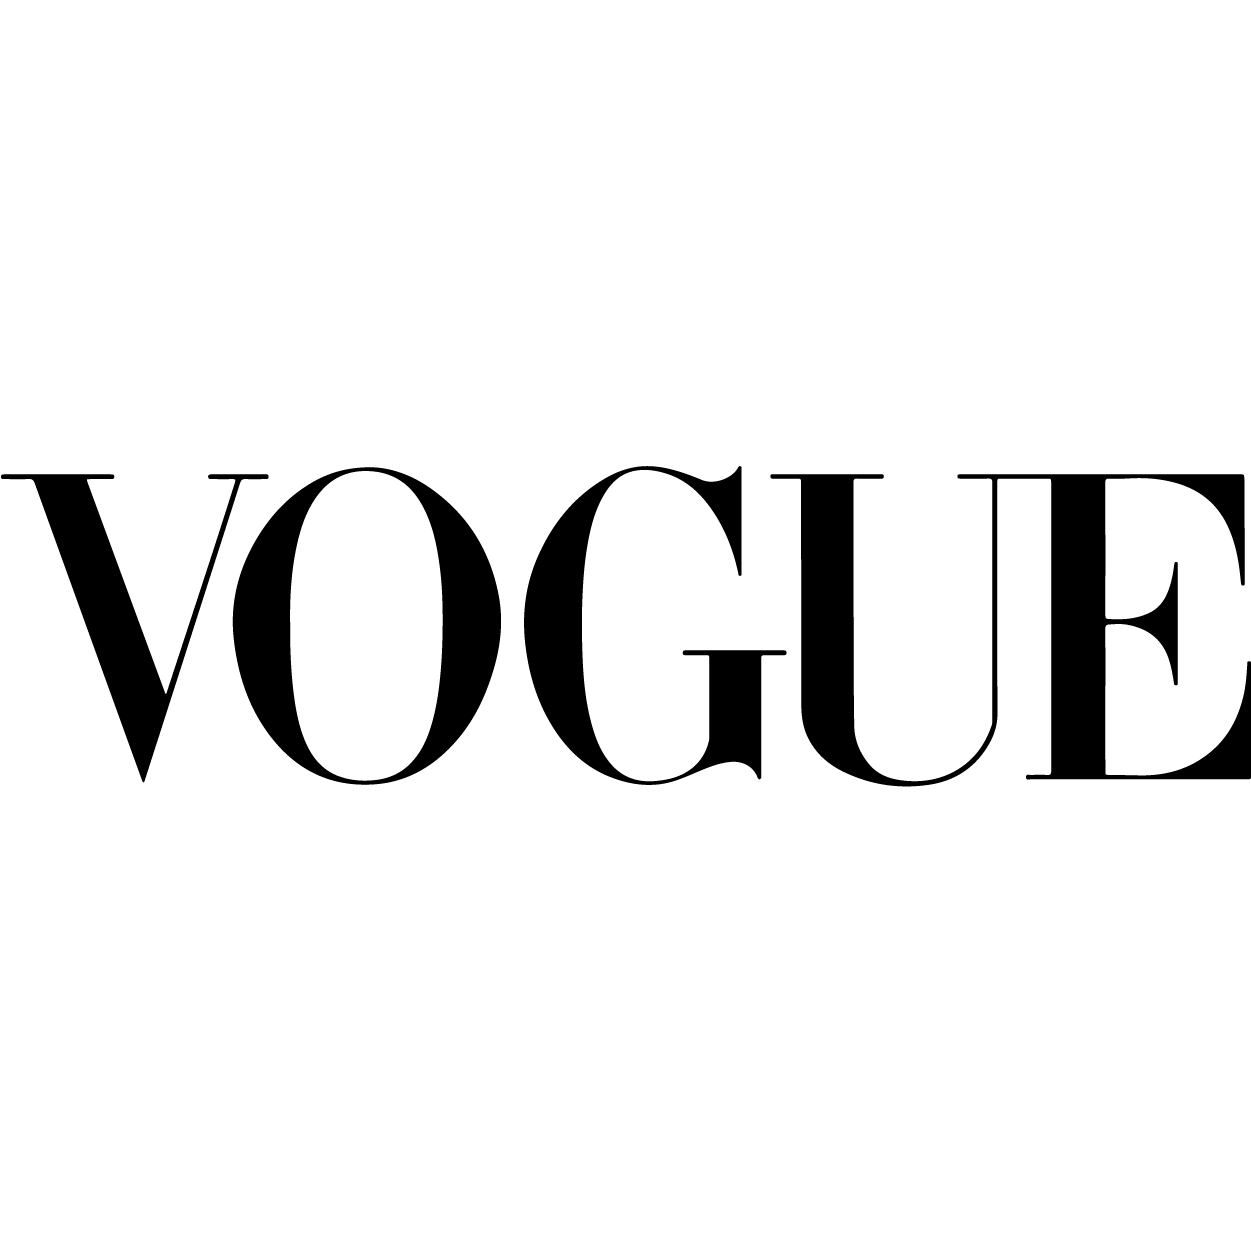 THE BREATHING CLASS PRESS LOGOS_Vogue.png